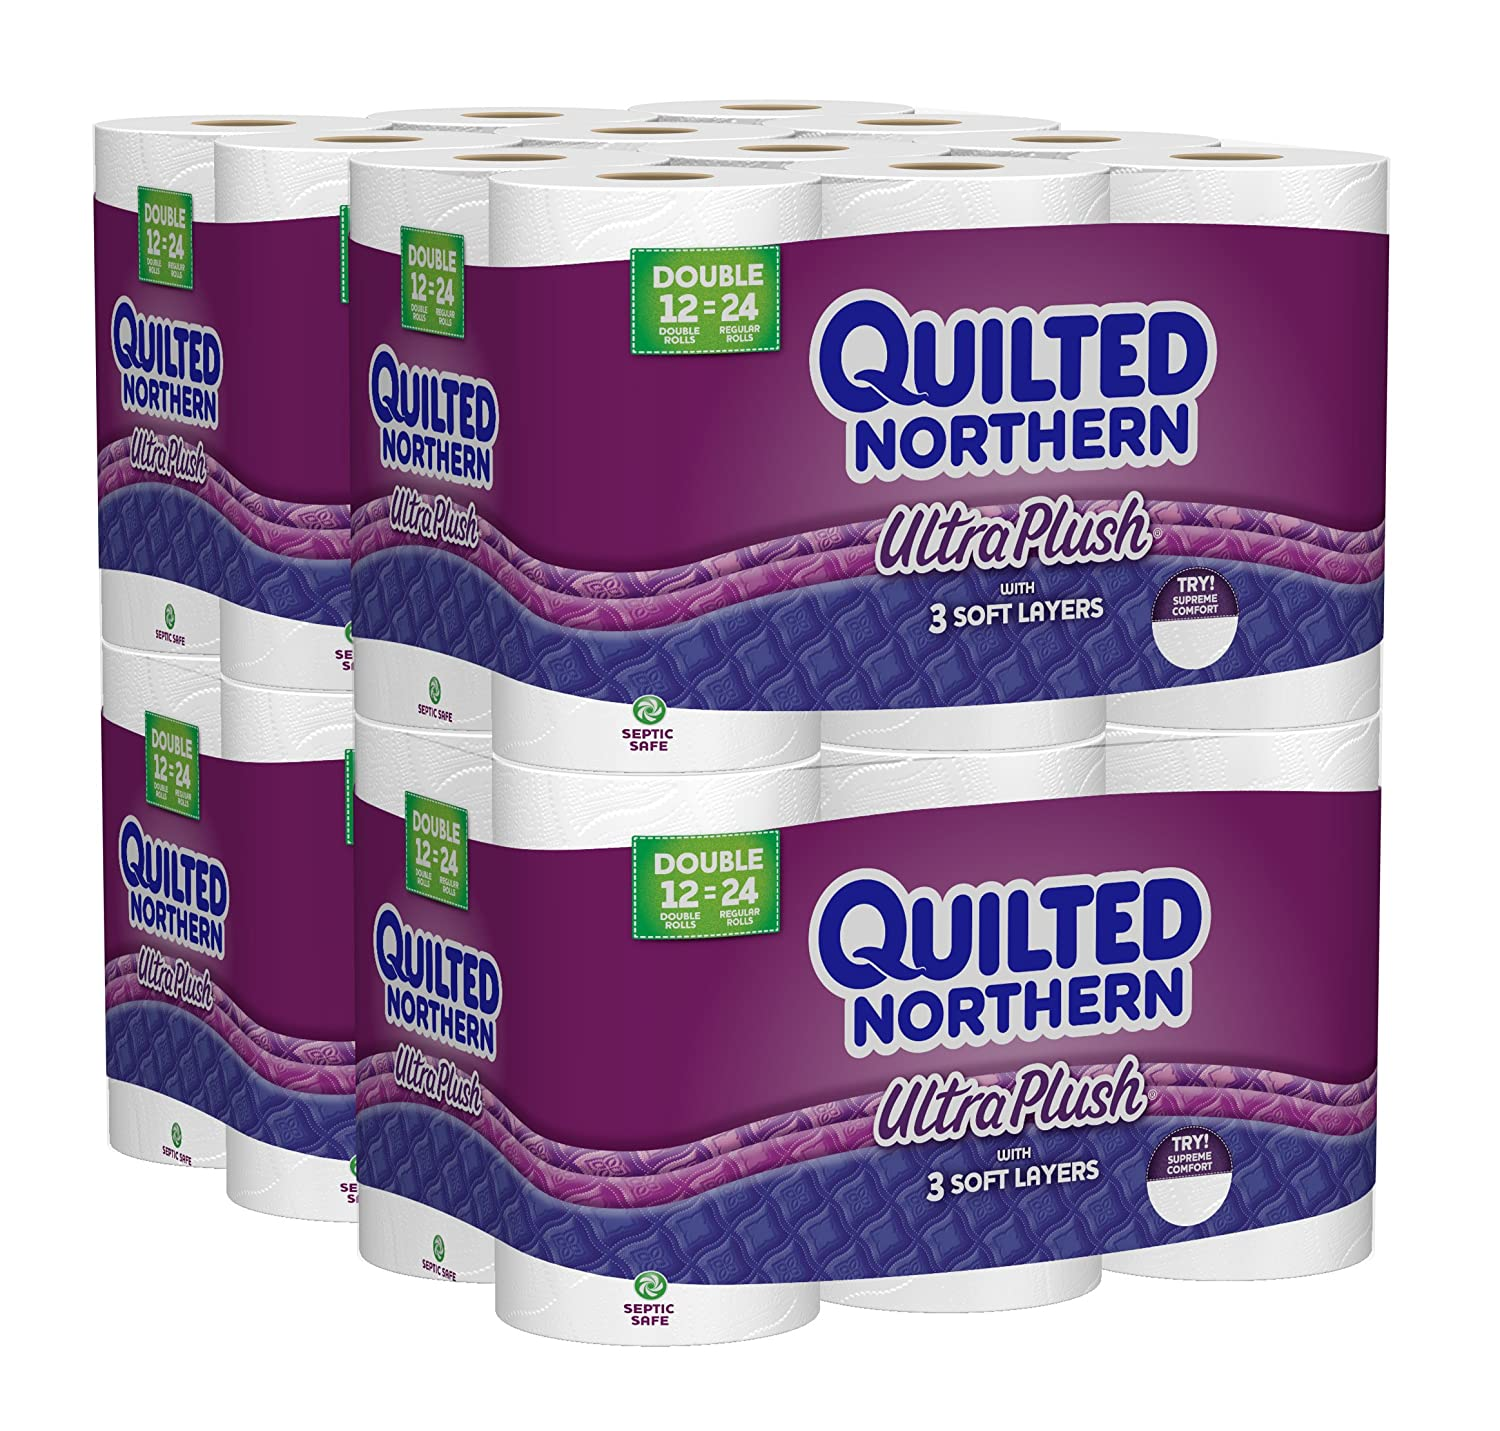 Amazon.com: Quilted Northern Ultra Plush Toilet Paper, Pack of 48 ... : quilted northern toilet paper coupon - Adamdwight.com